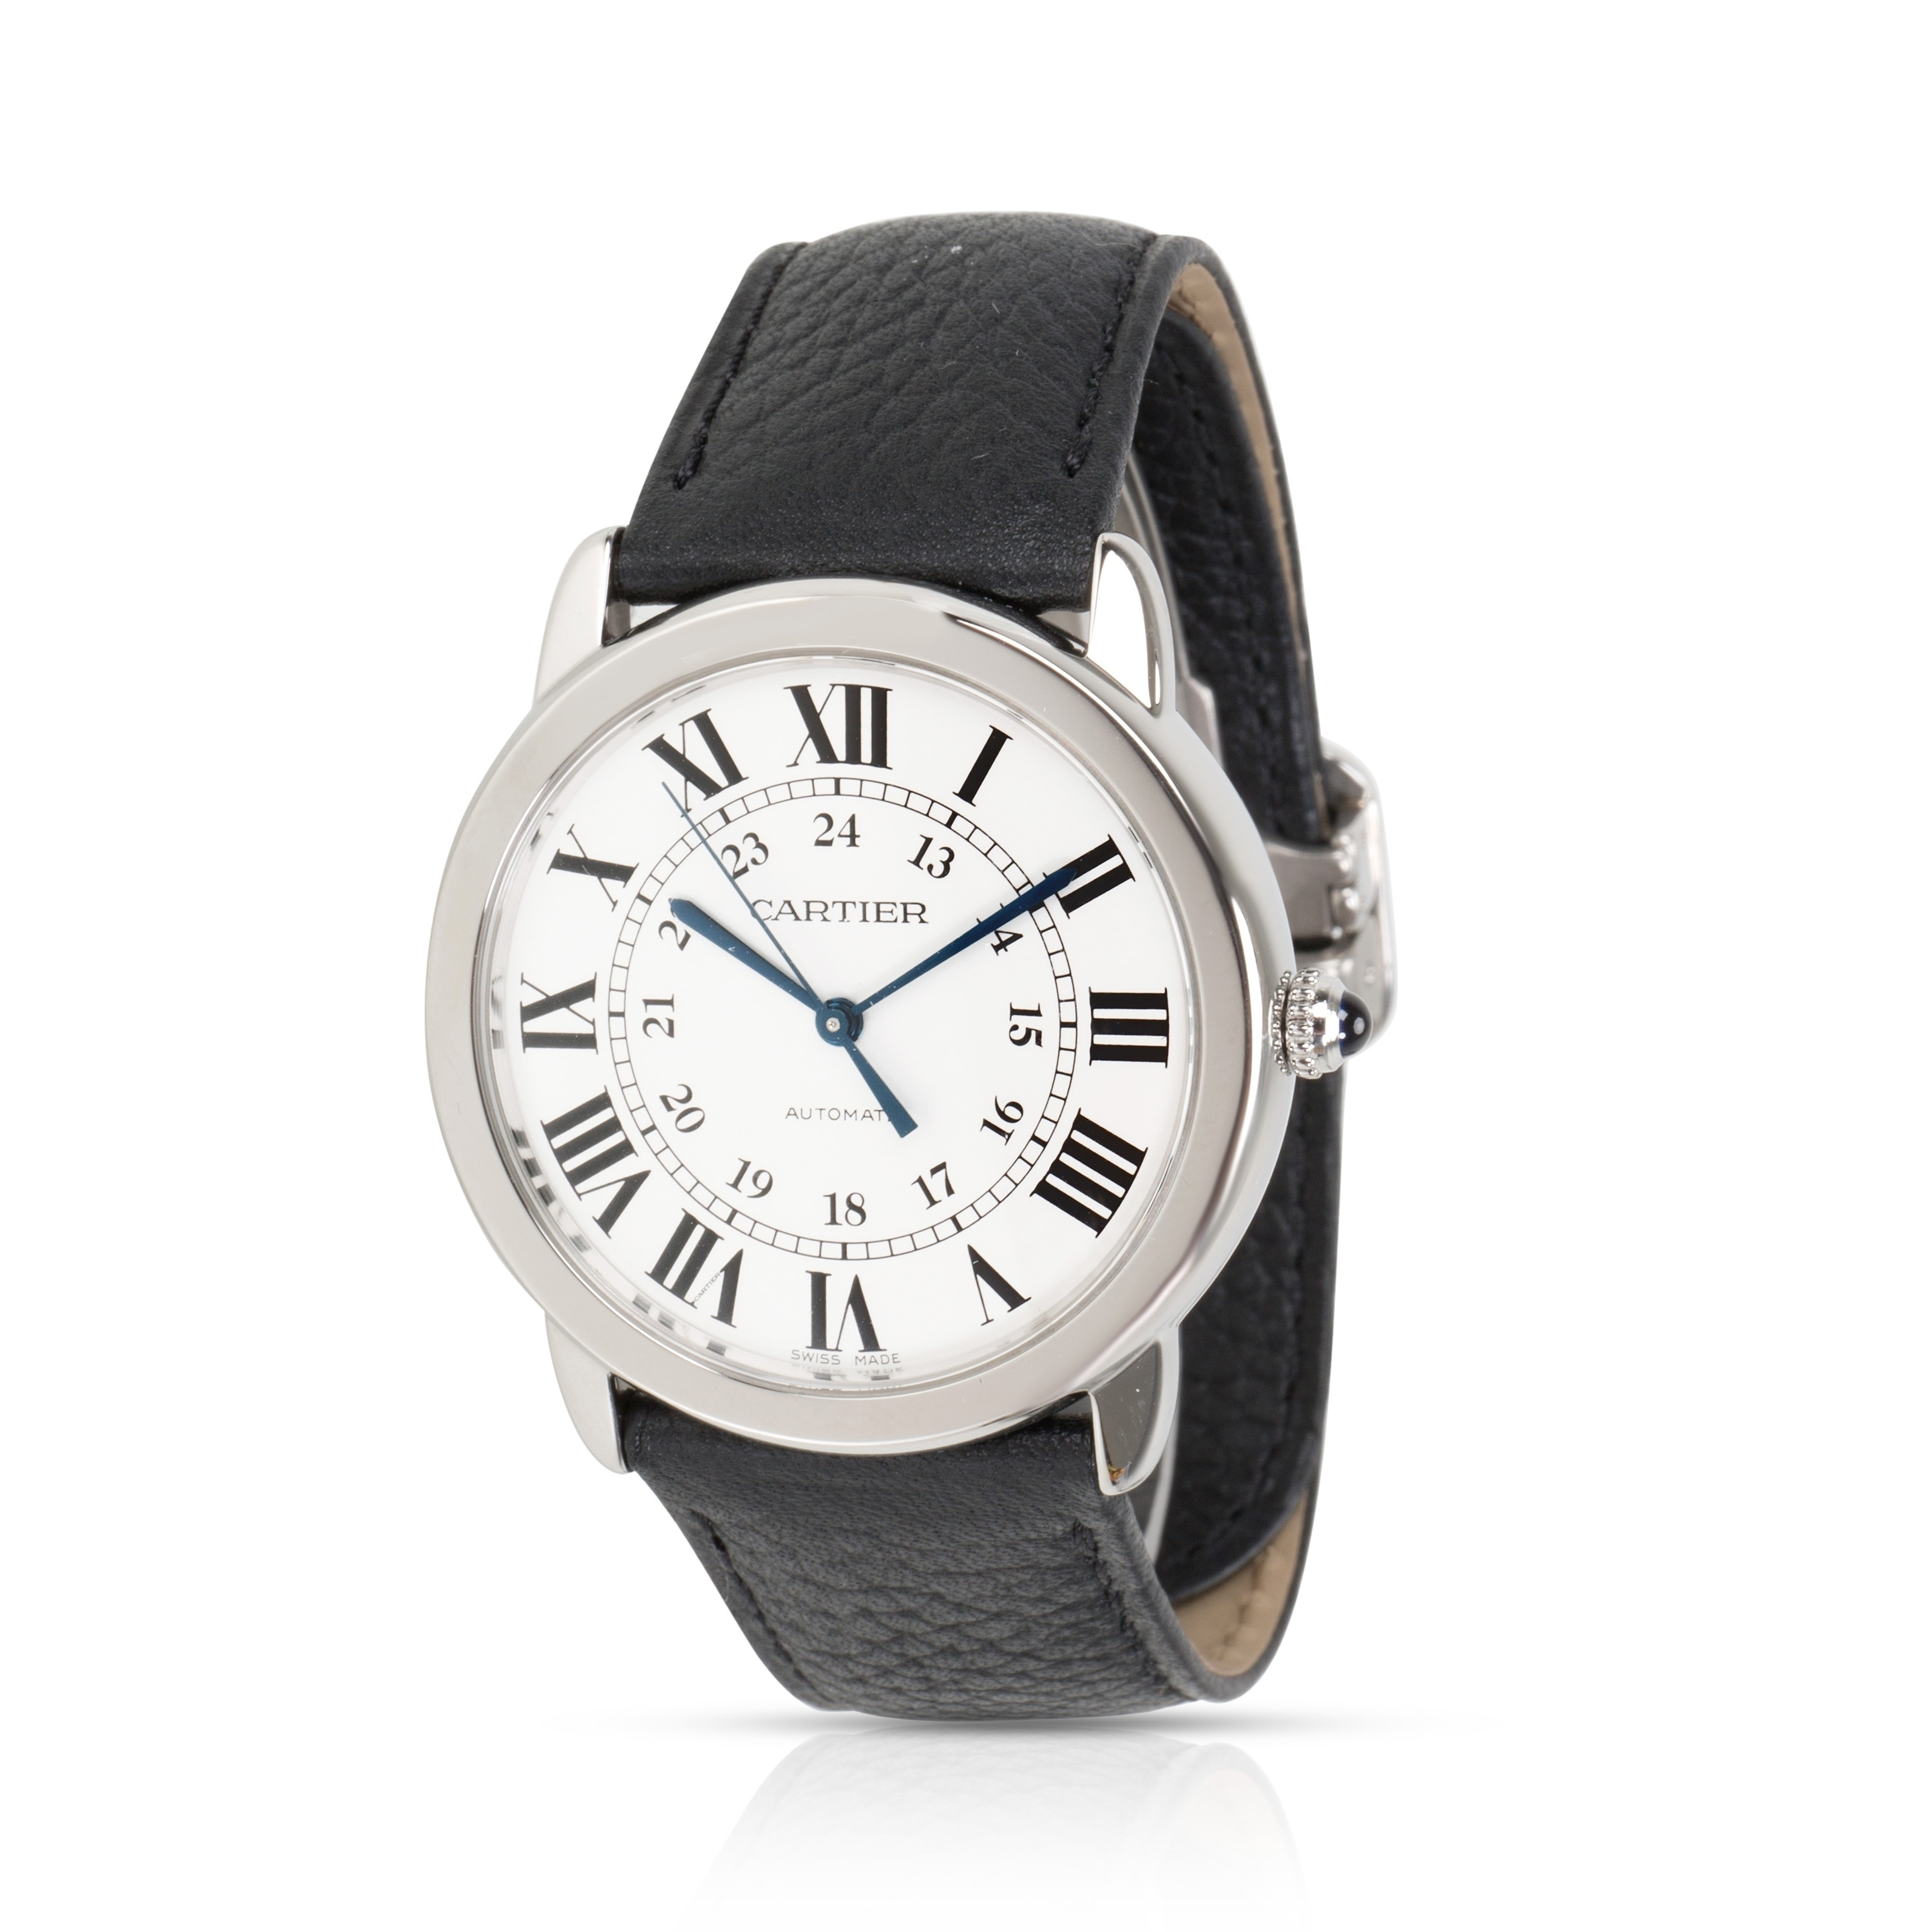 Pre-Owned Cartier Ronde Solo WSRN0021 Mens Watch in Stainless Steel